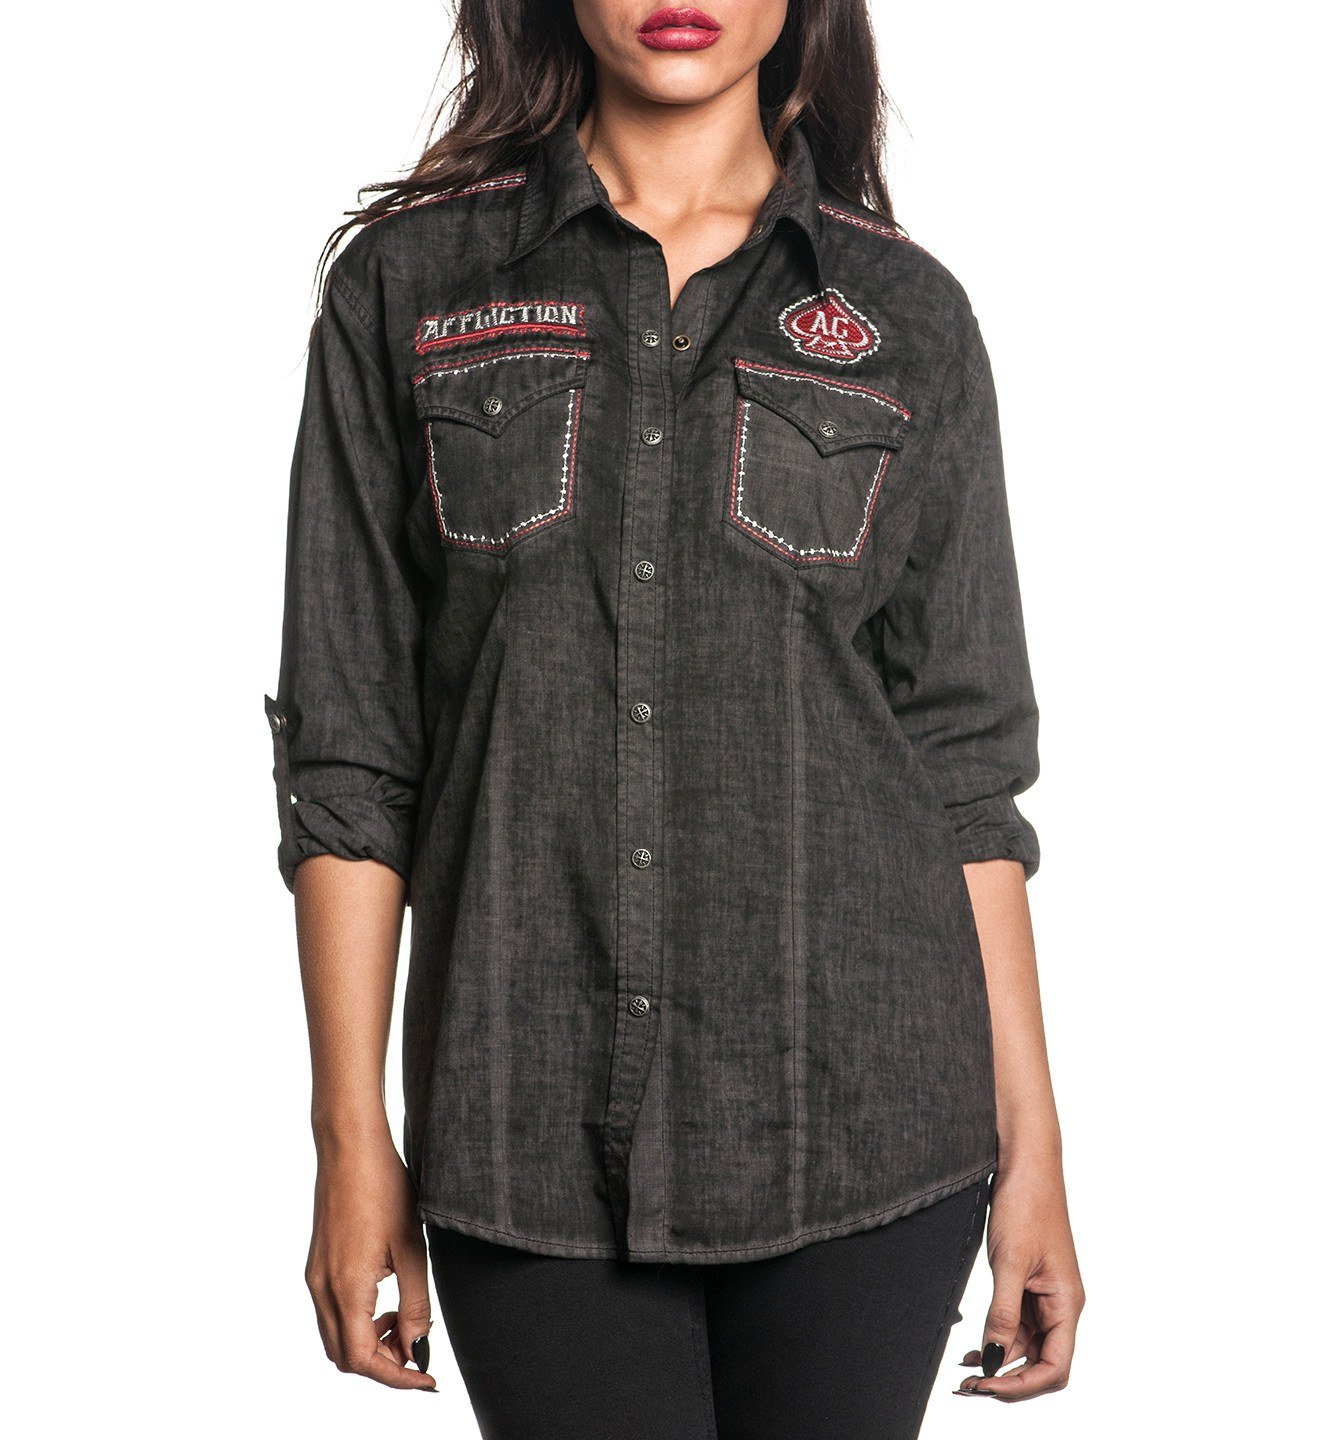 Metal Mind - Womens Button Down Tops - Affliction Clothing